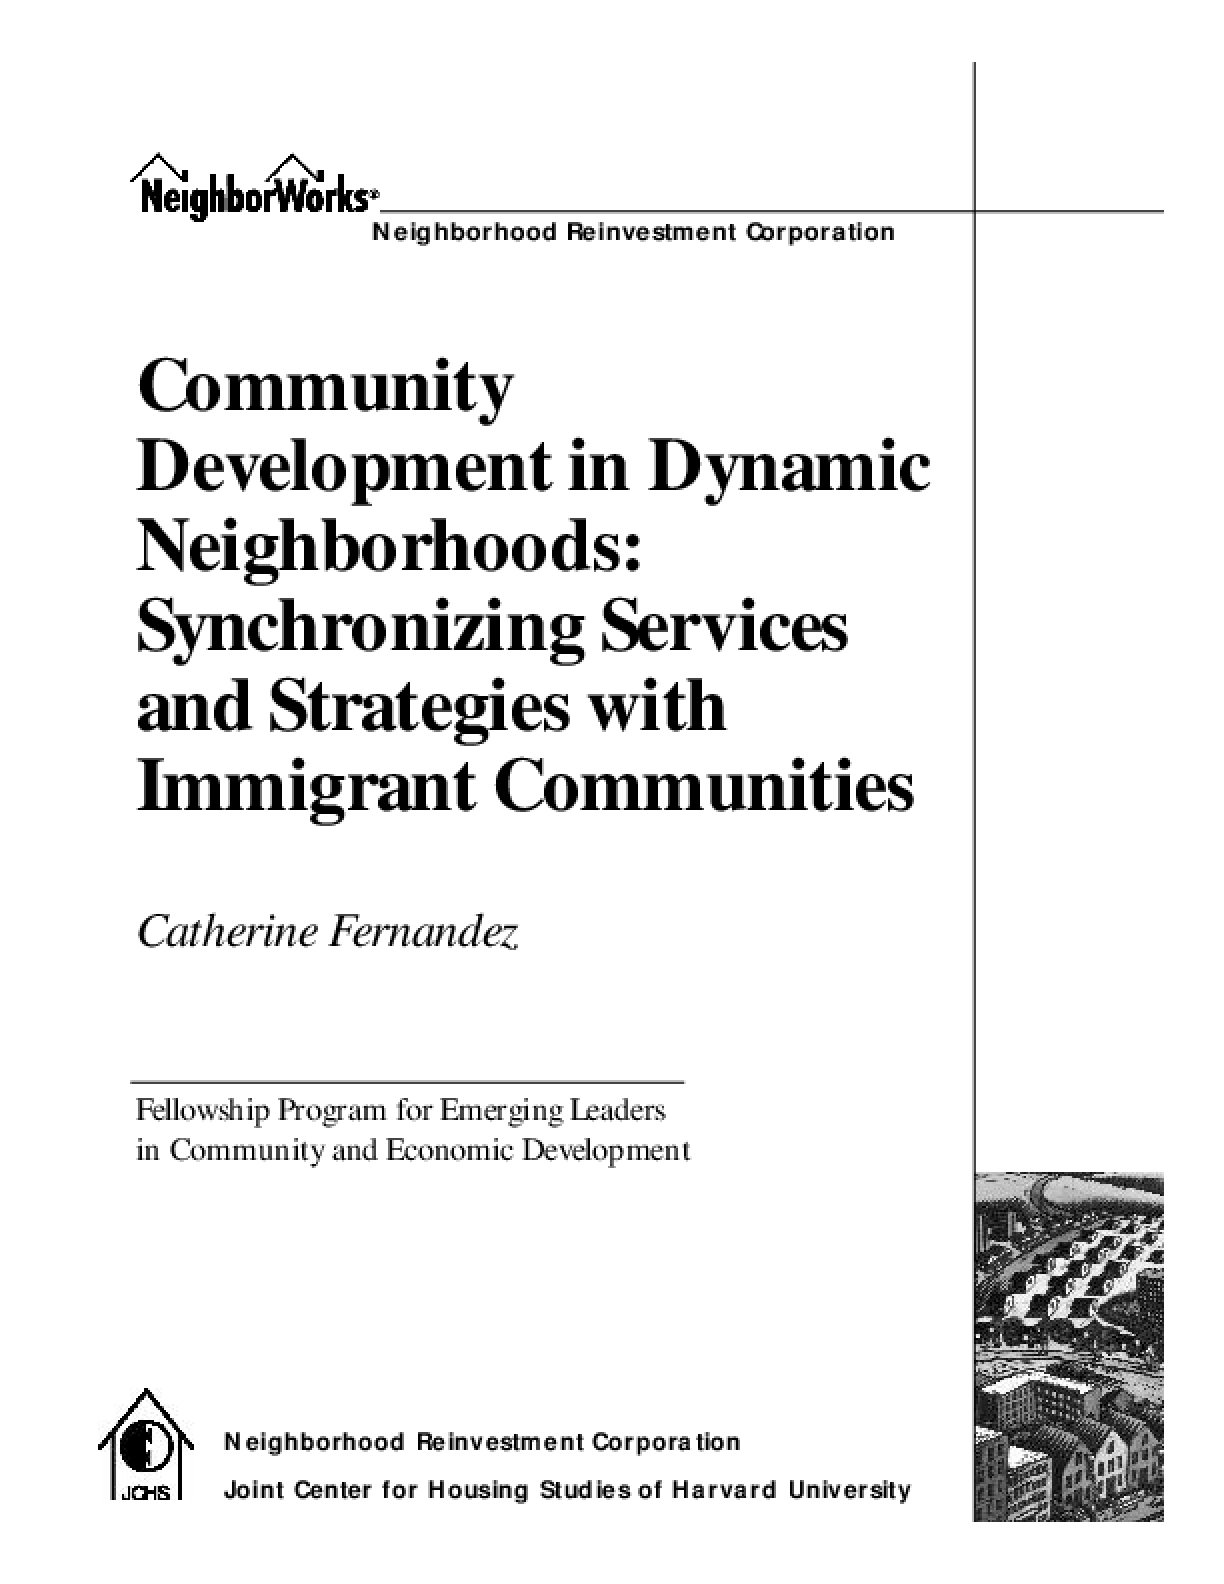 Community Development in Dynamic Neighborhoods: Synchronizing Services and Strategies with Immigrant Communities